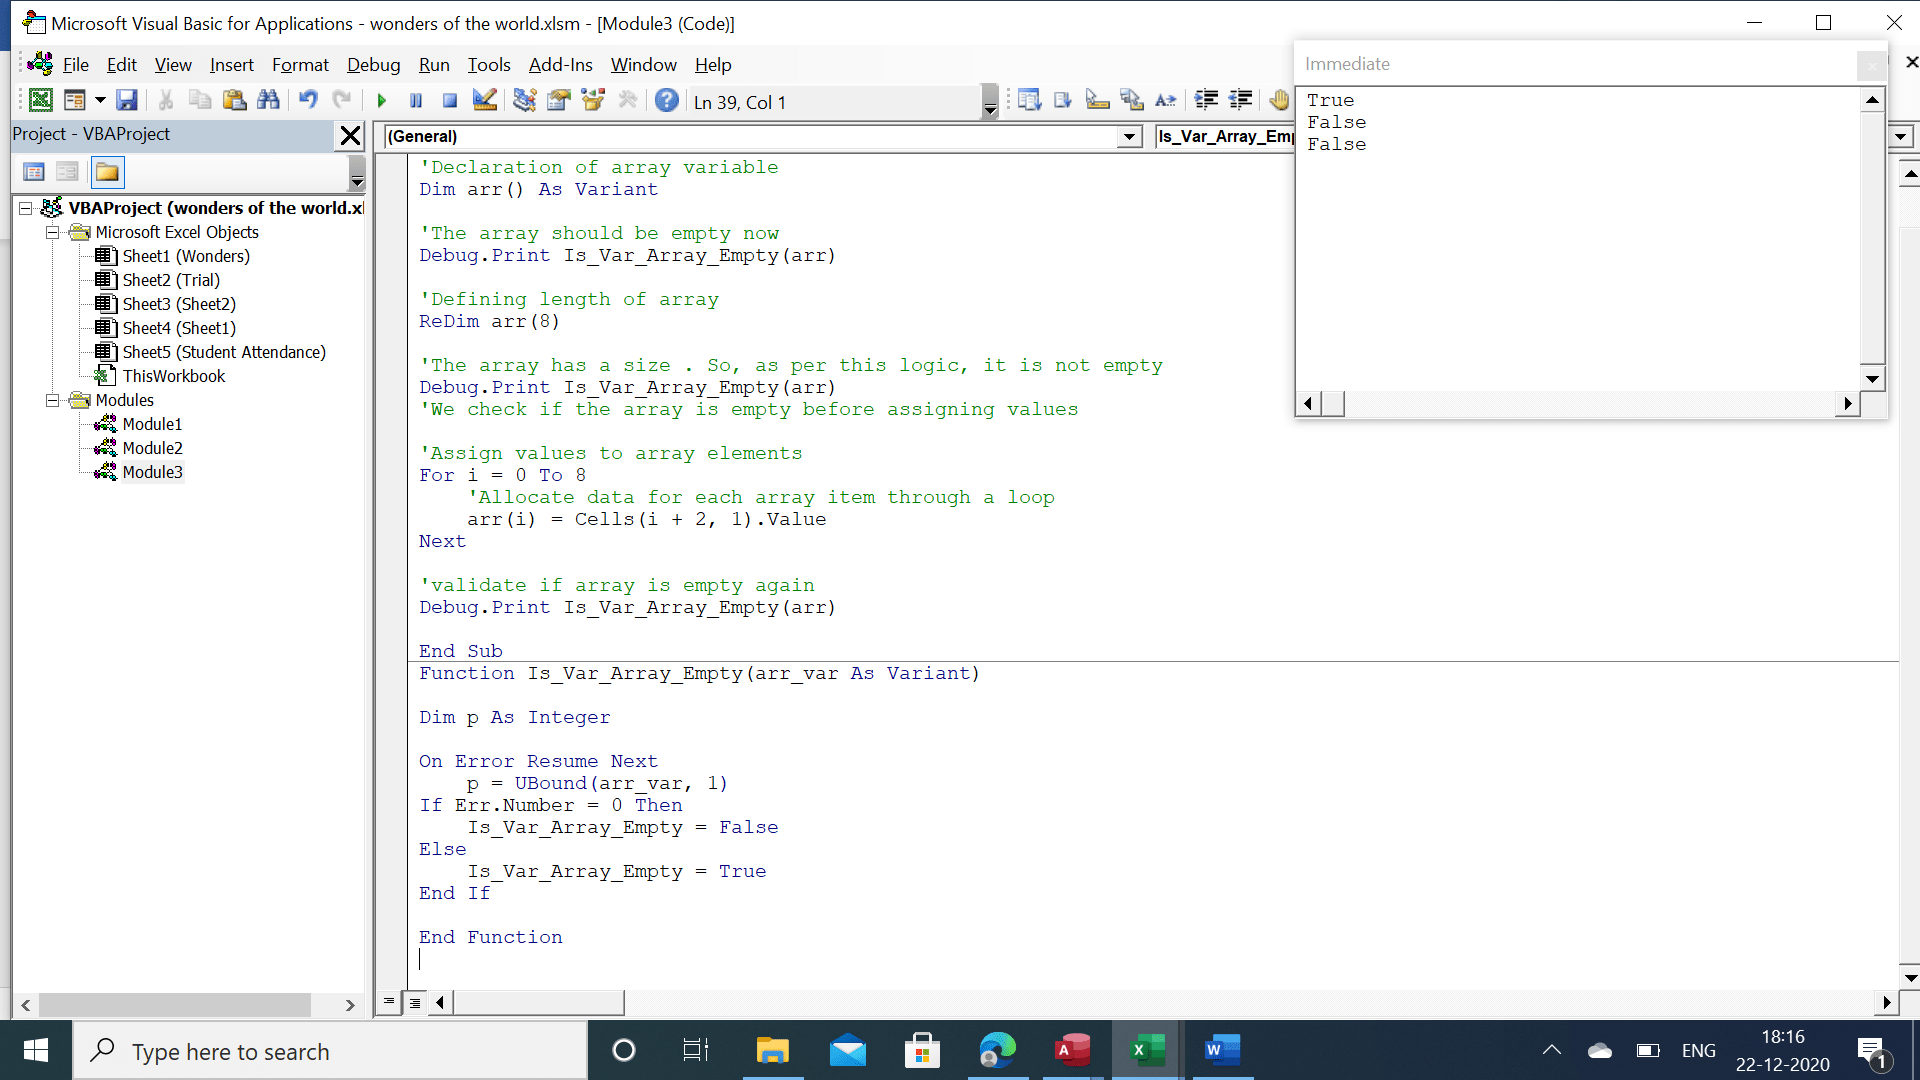 How to Check if an Array Is Empty in VBA